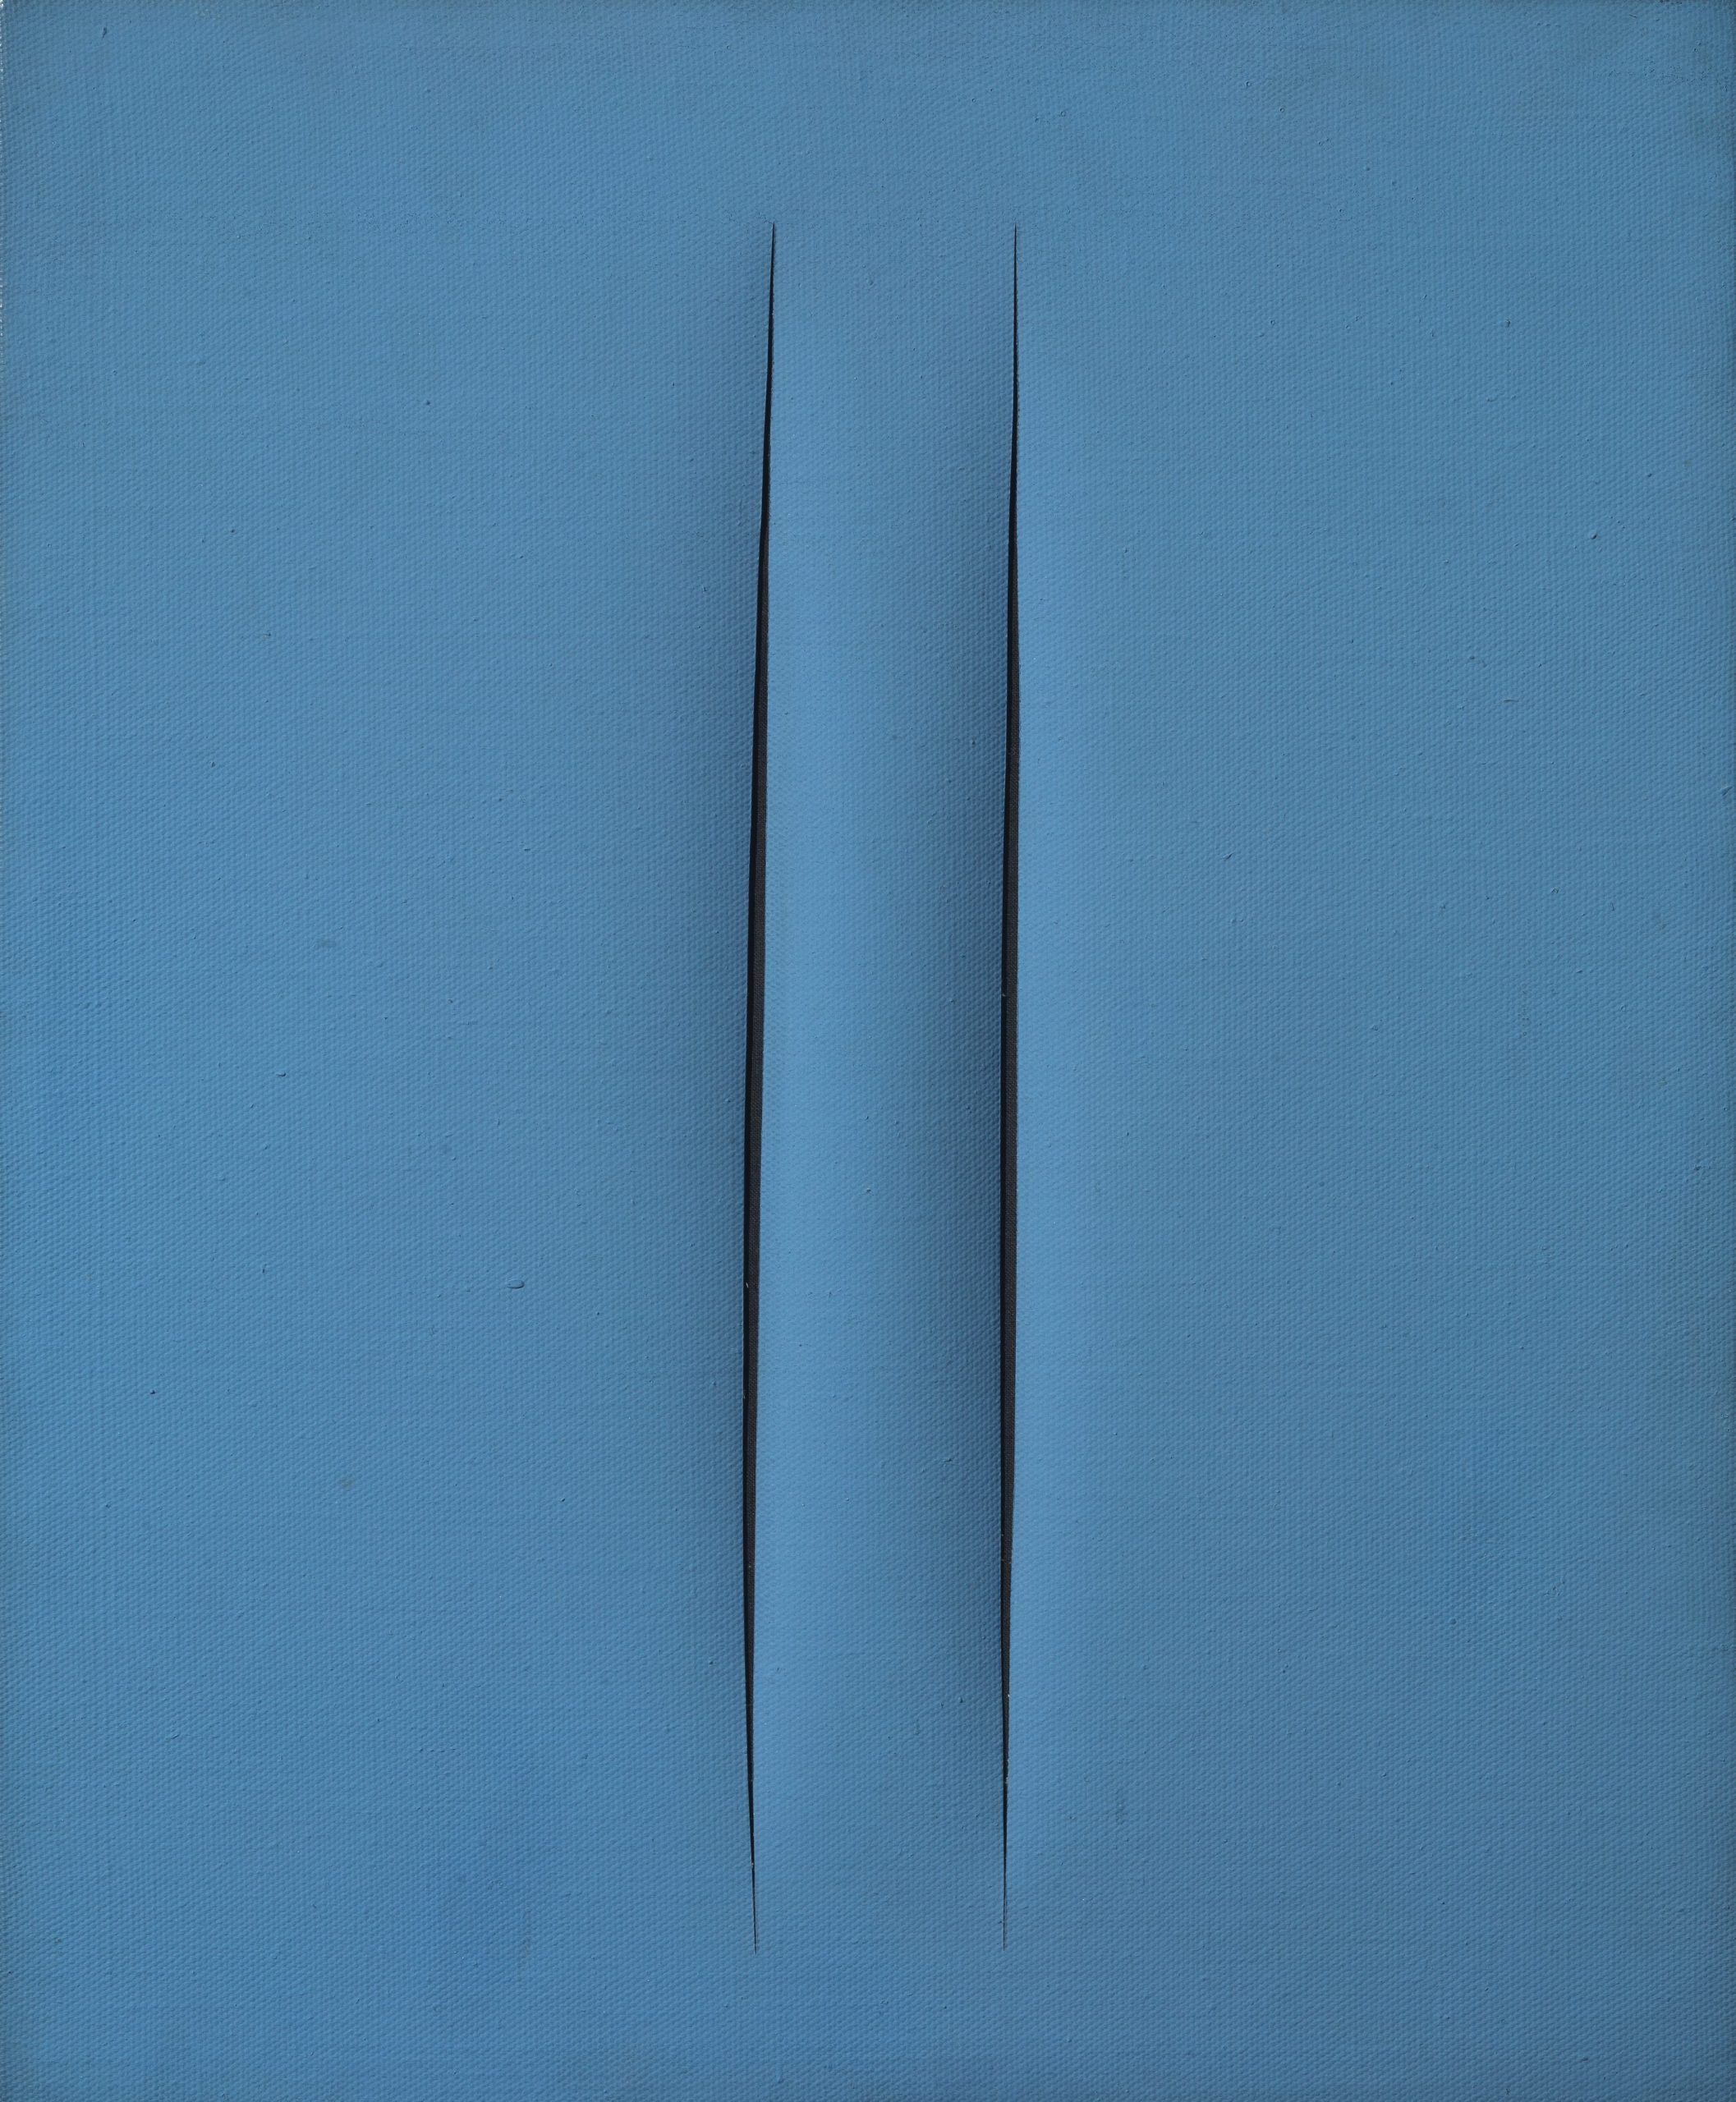 Lucio Fontana, Concetto spaziale, Attese, 1966, water-based paint on canvas, blu, 61x50 cm